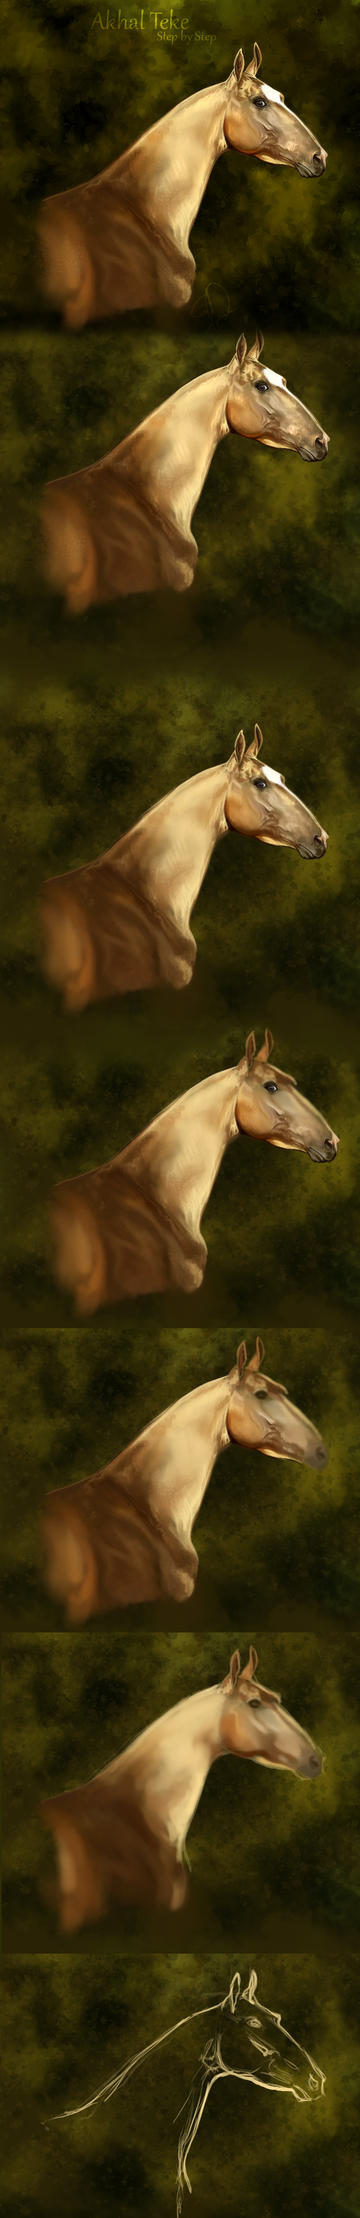 Akhal Teke II step by step by Elsouille